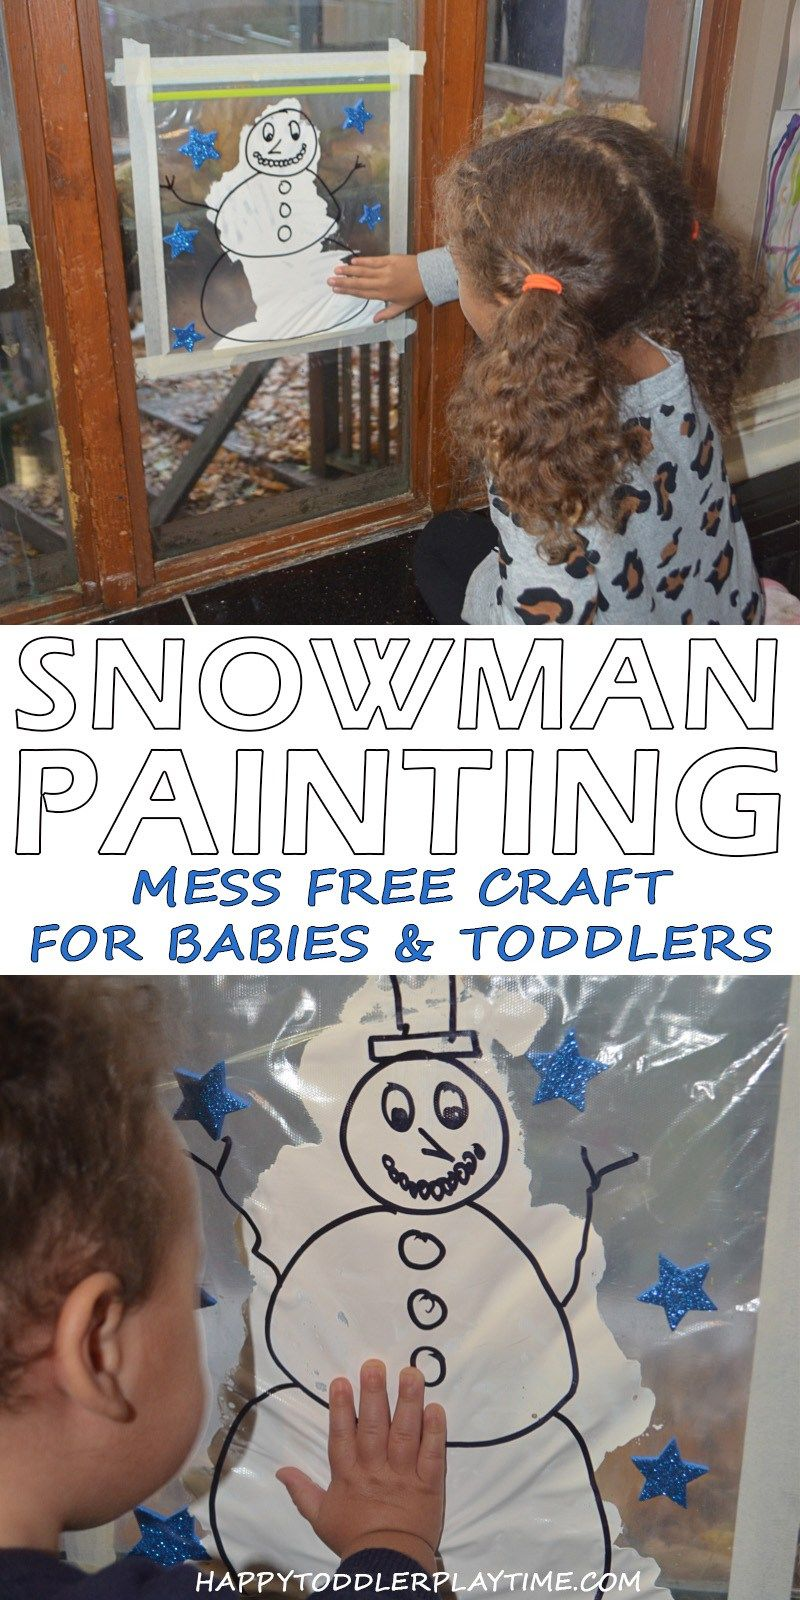 Mess Free Snowman Painting is part of Snowman toddlers crafts, Winter activities for toddlers, Snowman painting, Winter crafts, Arts and crafts for kids, Winter activities for kids - Mess free Snowman painting for Winter! A fun and easy art activity that is perfect for all ages  babies, toddlers and preschoolers!